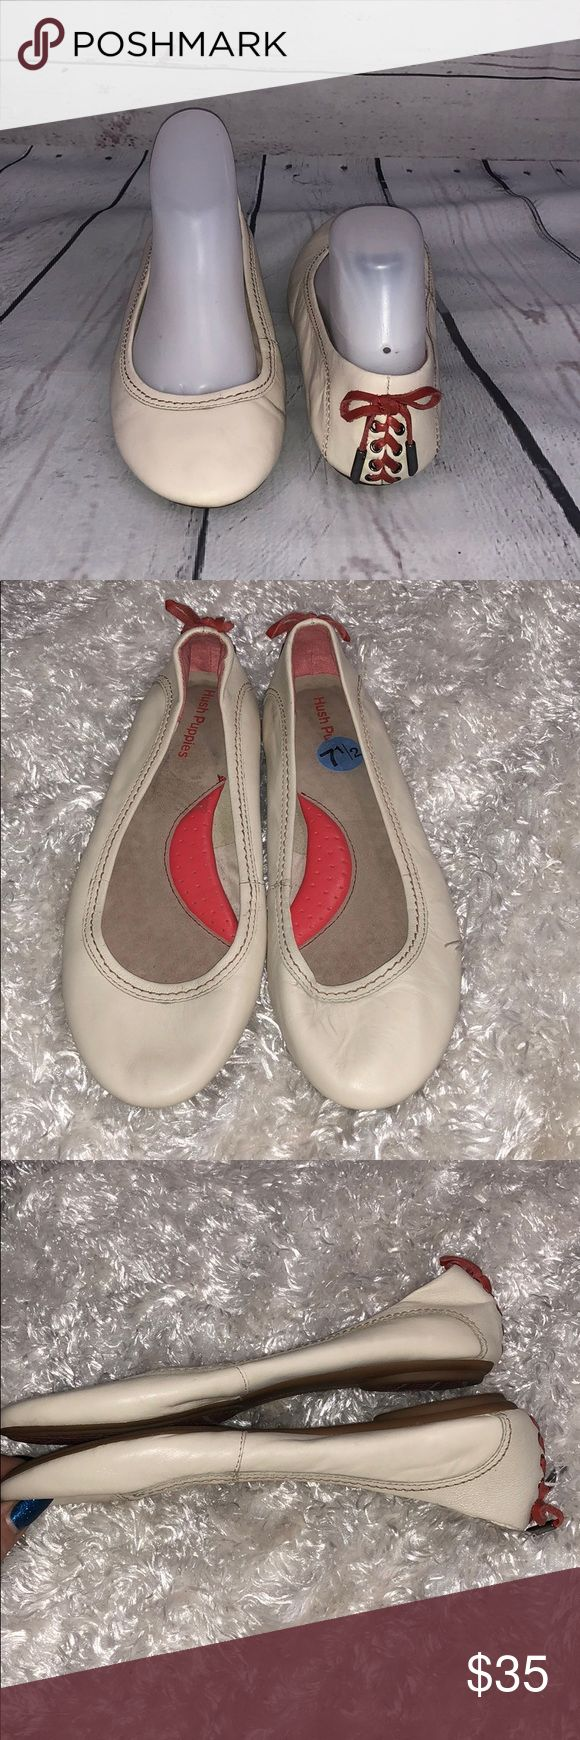 Cream color hush puppies size 7.5 Preloved. So cute!!! Burnt orange leather laced up back! So comfy, size 7.5. Hush Puppies Shoes Flats & Loafers